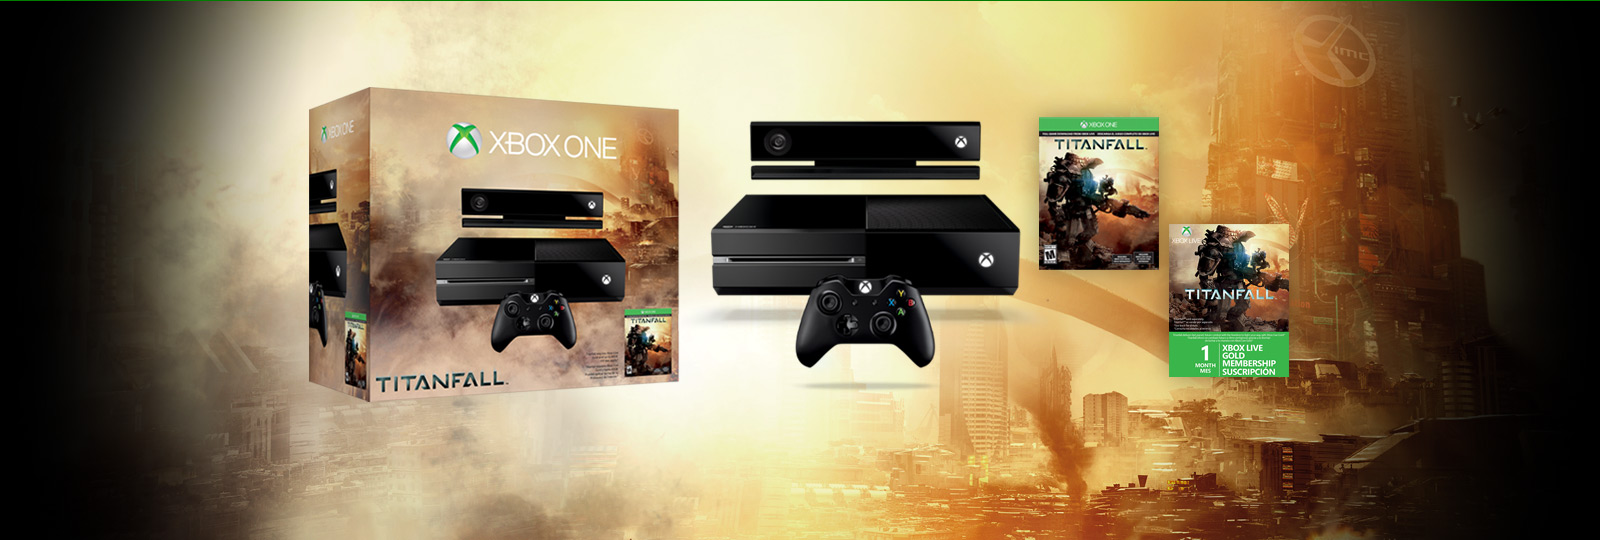 Xbox One Titanfall Bundle Gamer Trust: What Tita...